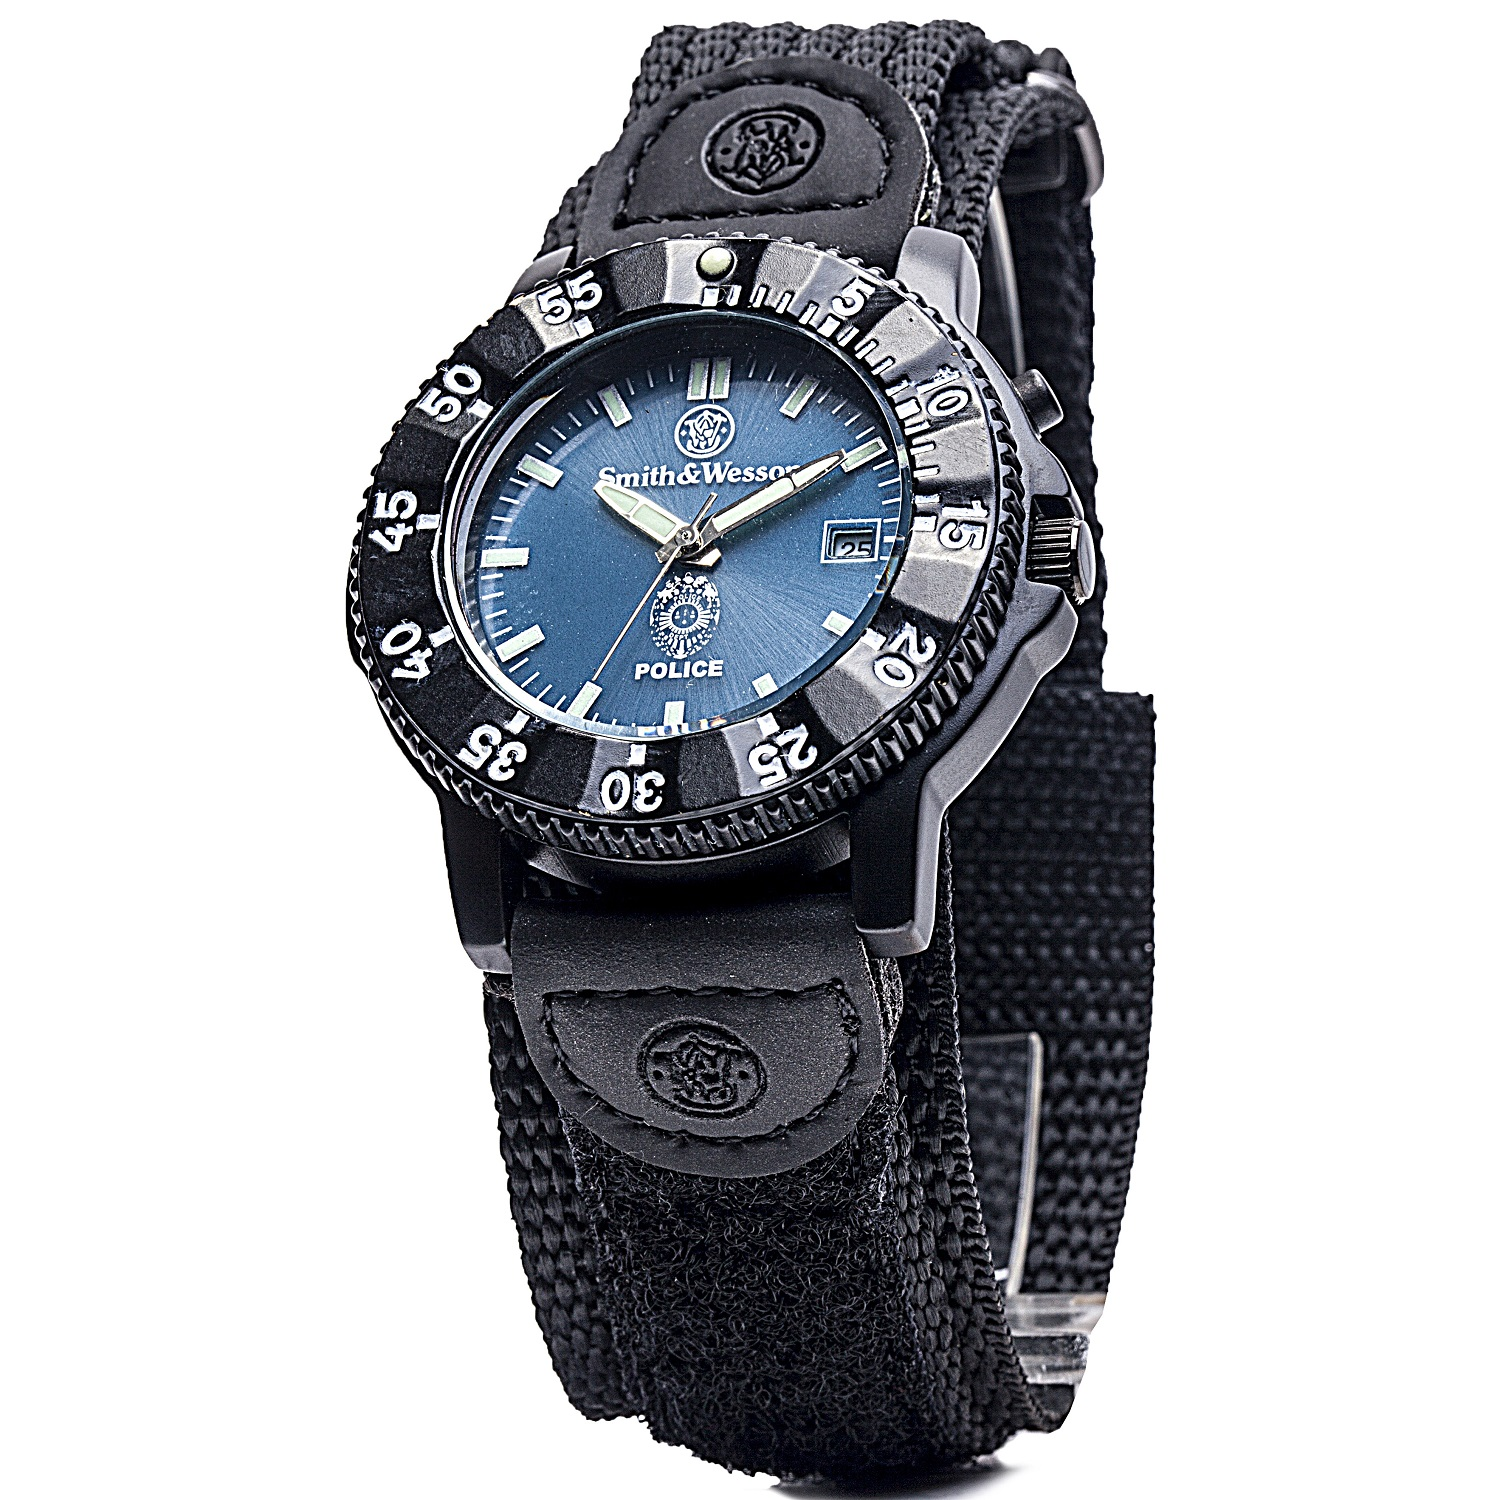 Smith & Wesson Police Watch Blue Dial Black Nylon Strap